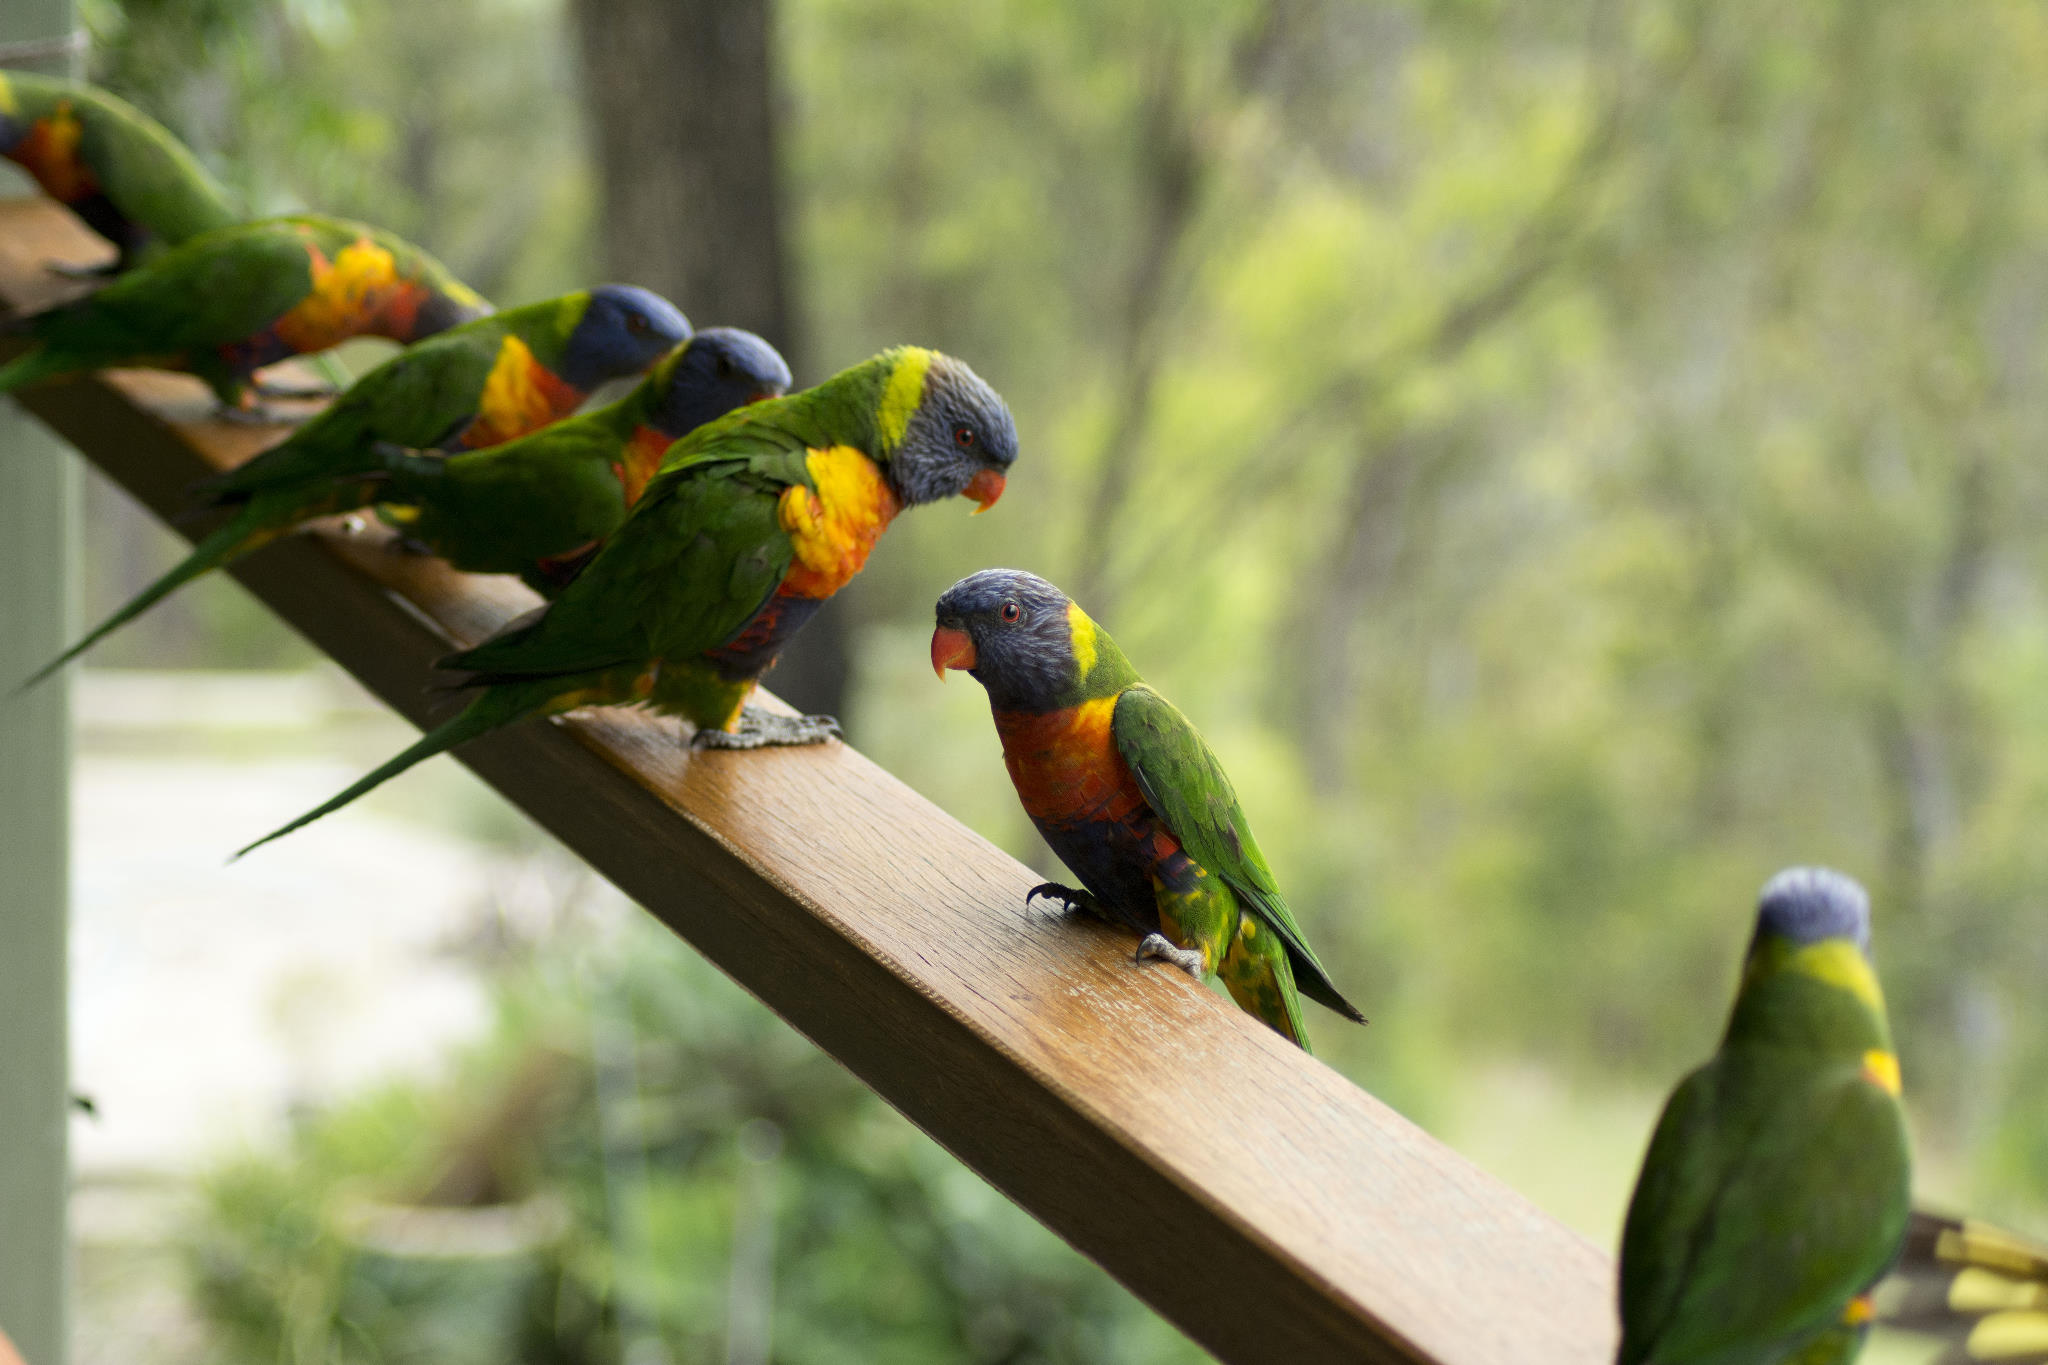 The Rainbow Lorikeet line up